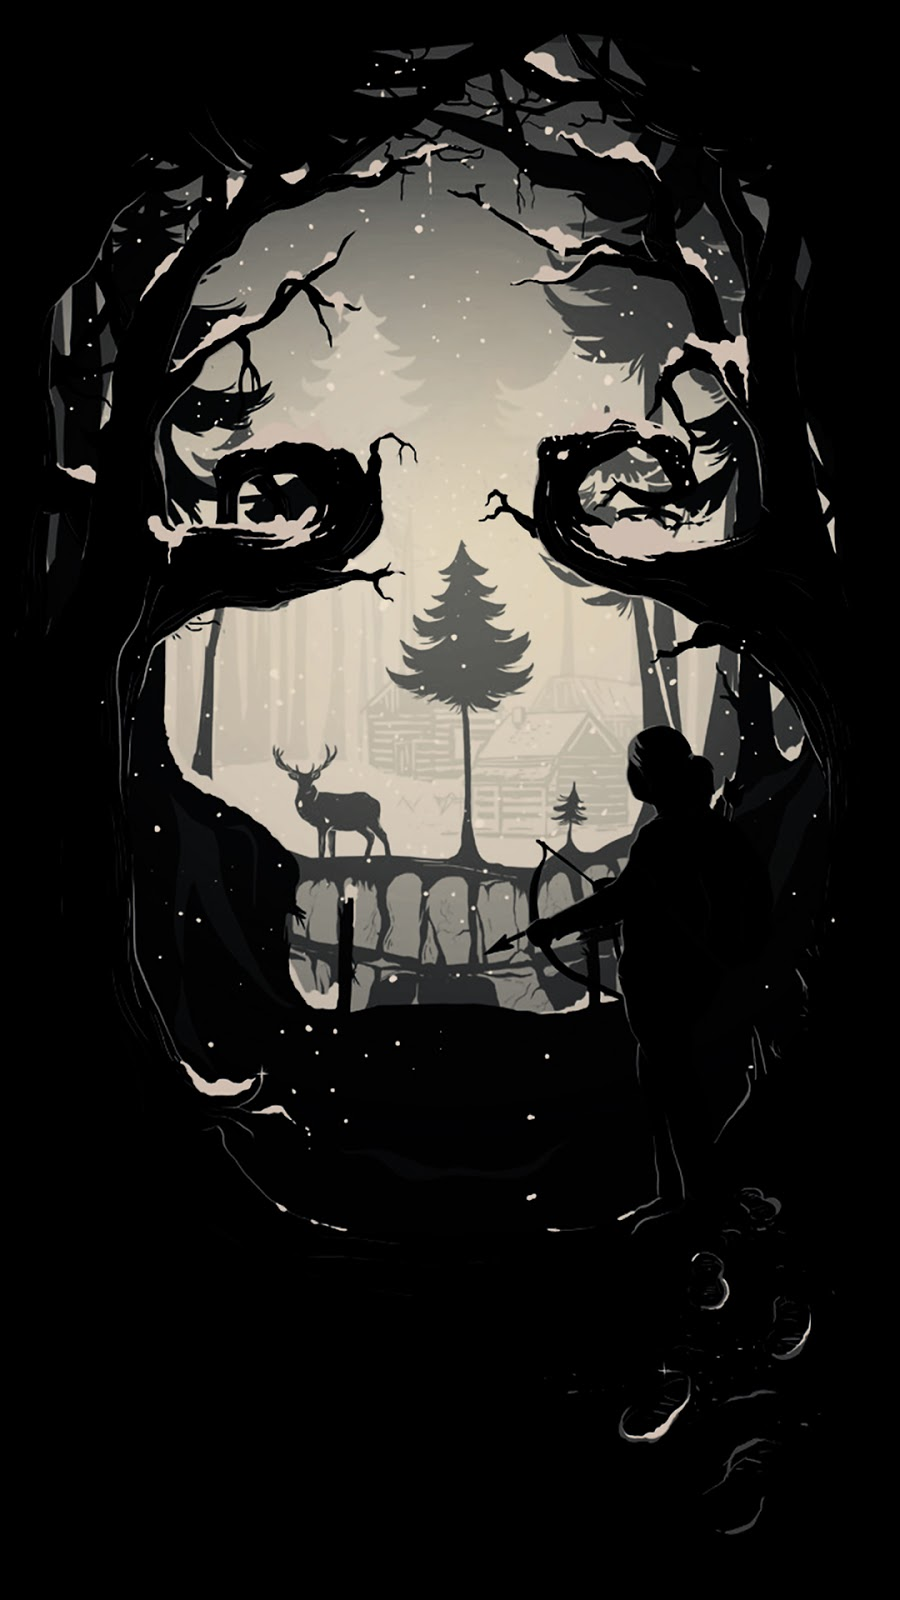 A amoled wallpaper of the game the last of us in 1080 x 1920 pixels